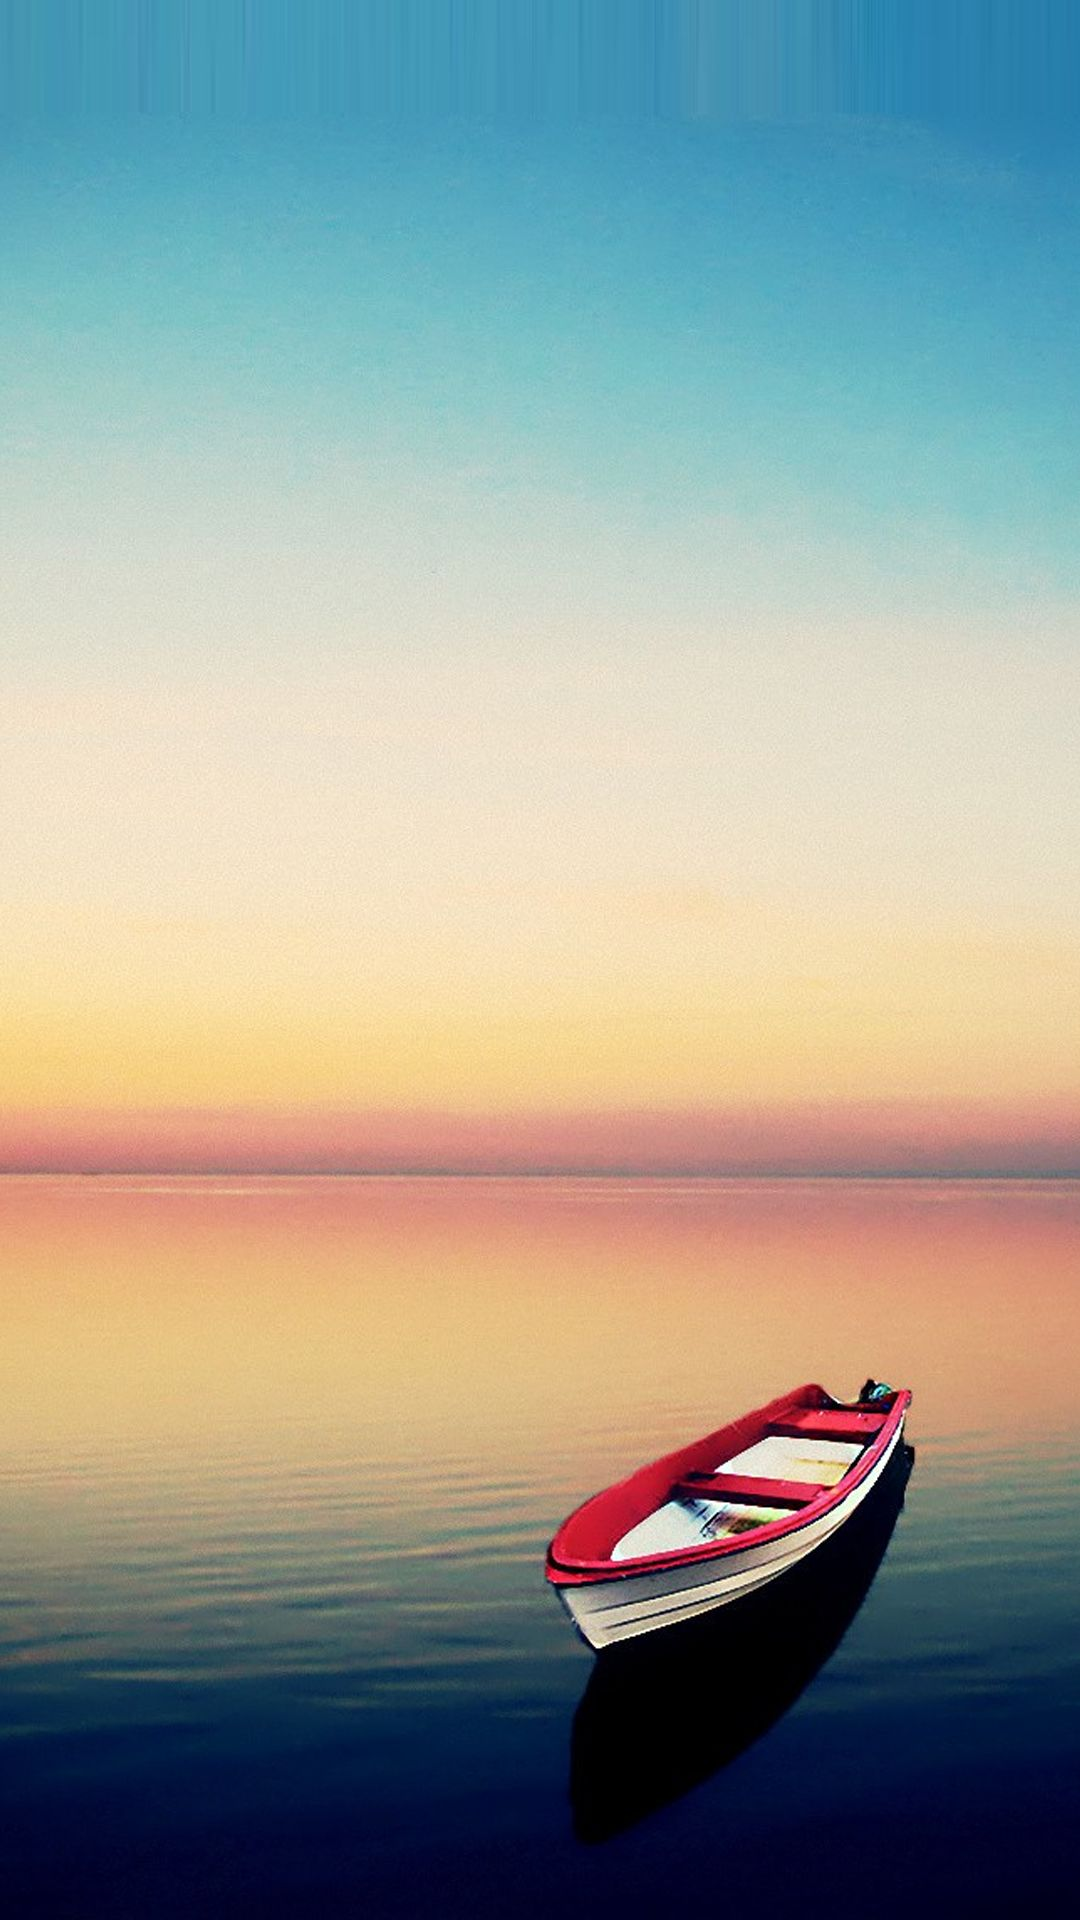 Boat At Sunset Smartphone Hd Wallpapers Getphotos Eu Download Free Hd Smartphone Wallpapers Samsung Galaxy Wallpaper Galaxy Wallpaper Samsung Wallpaper